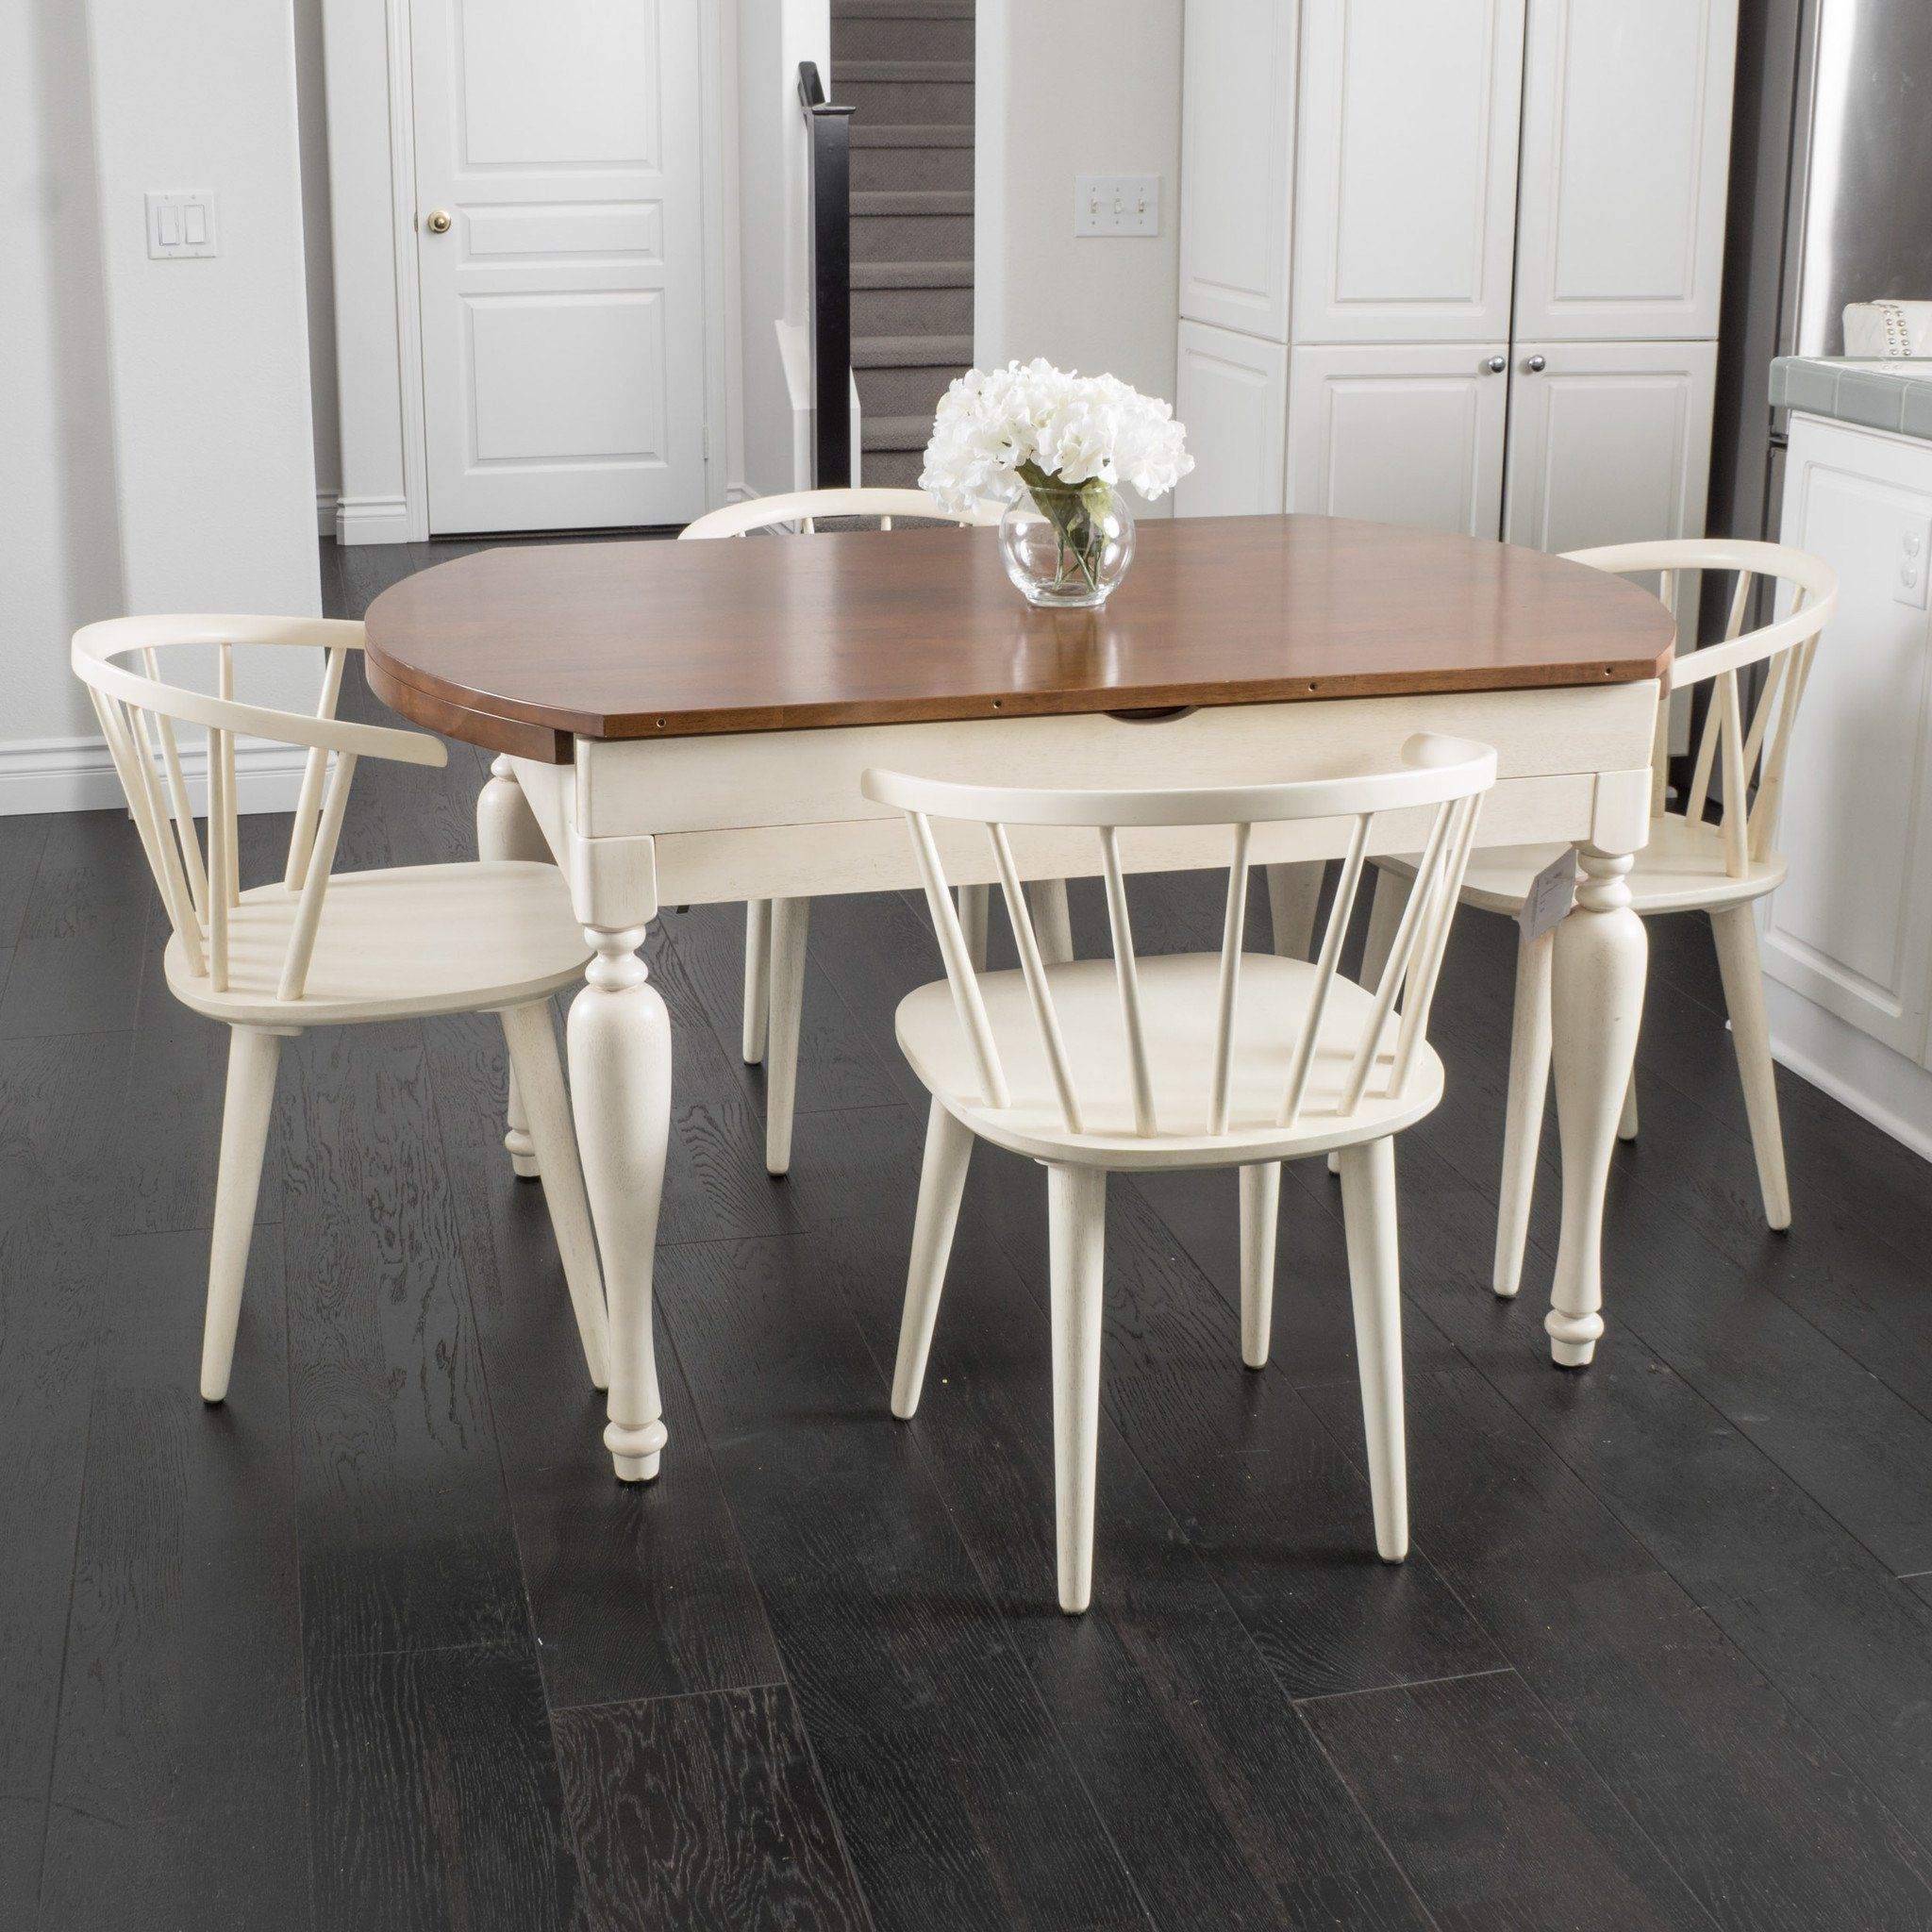 Ralph Spindle 5 piece Wood Dining Set with